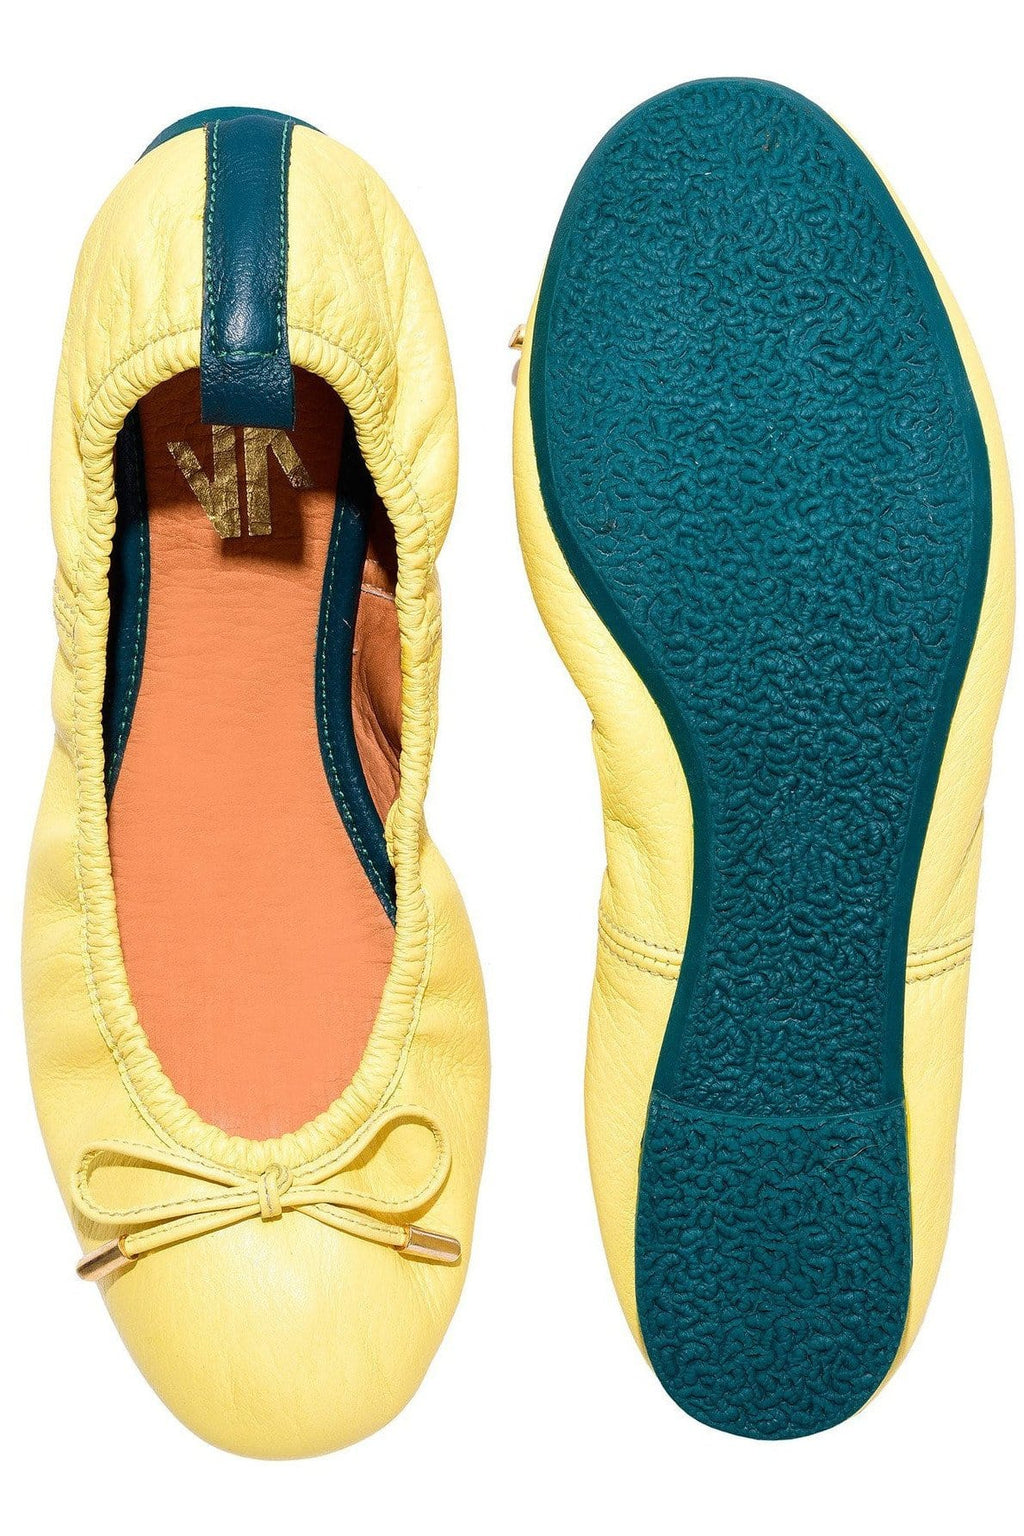 Columbian Leather Ballerina Flats in Yellow - Himelhoch's